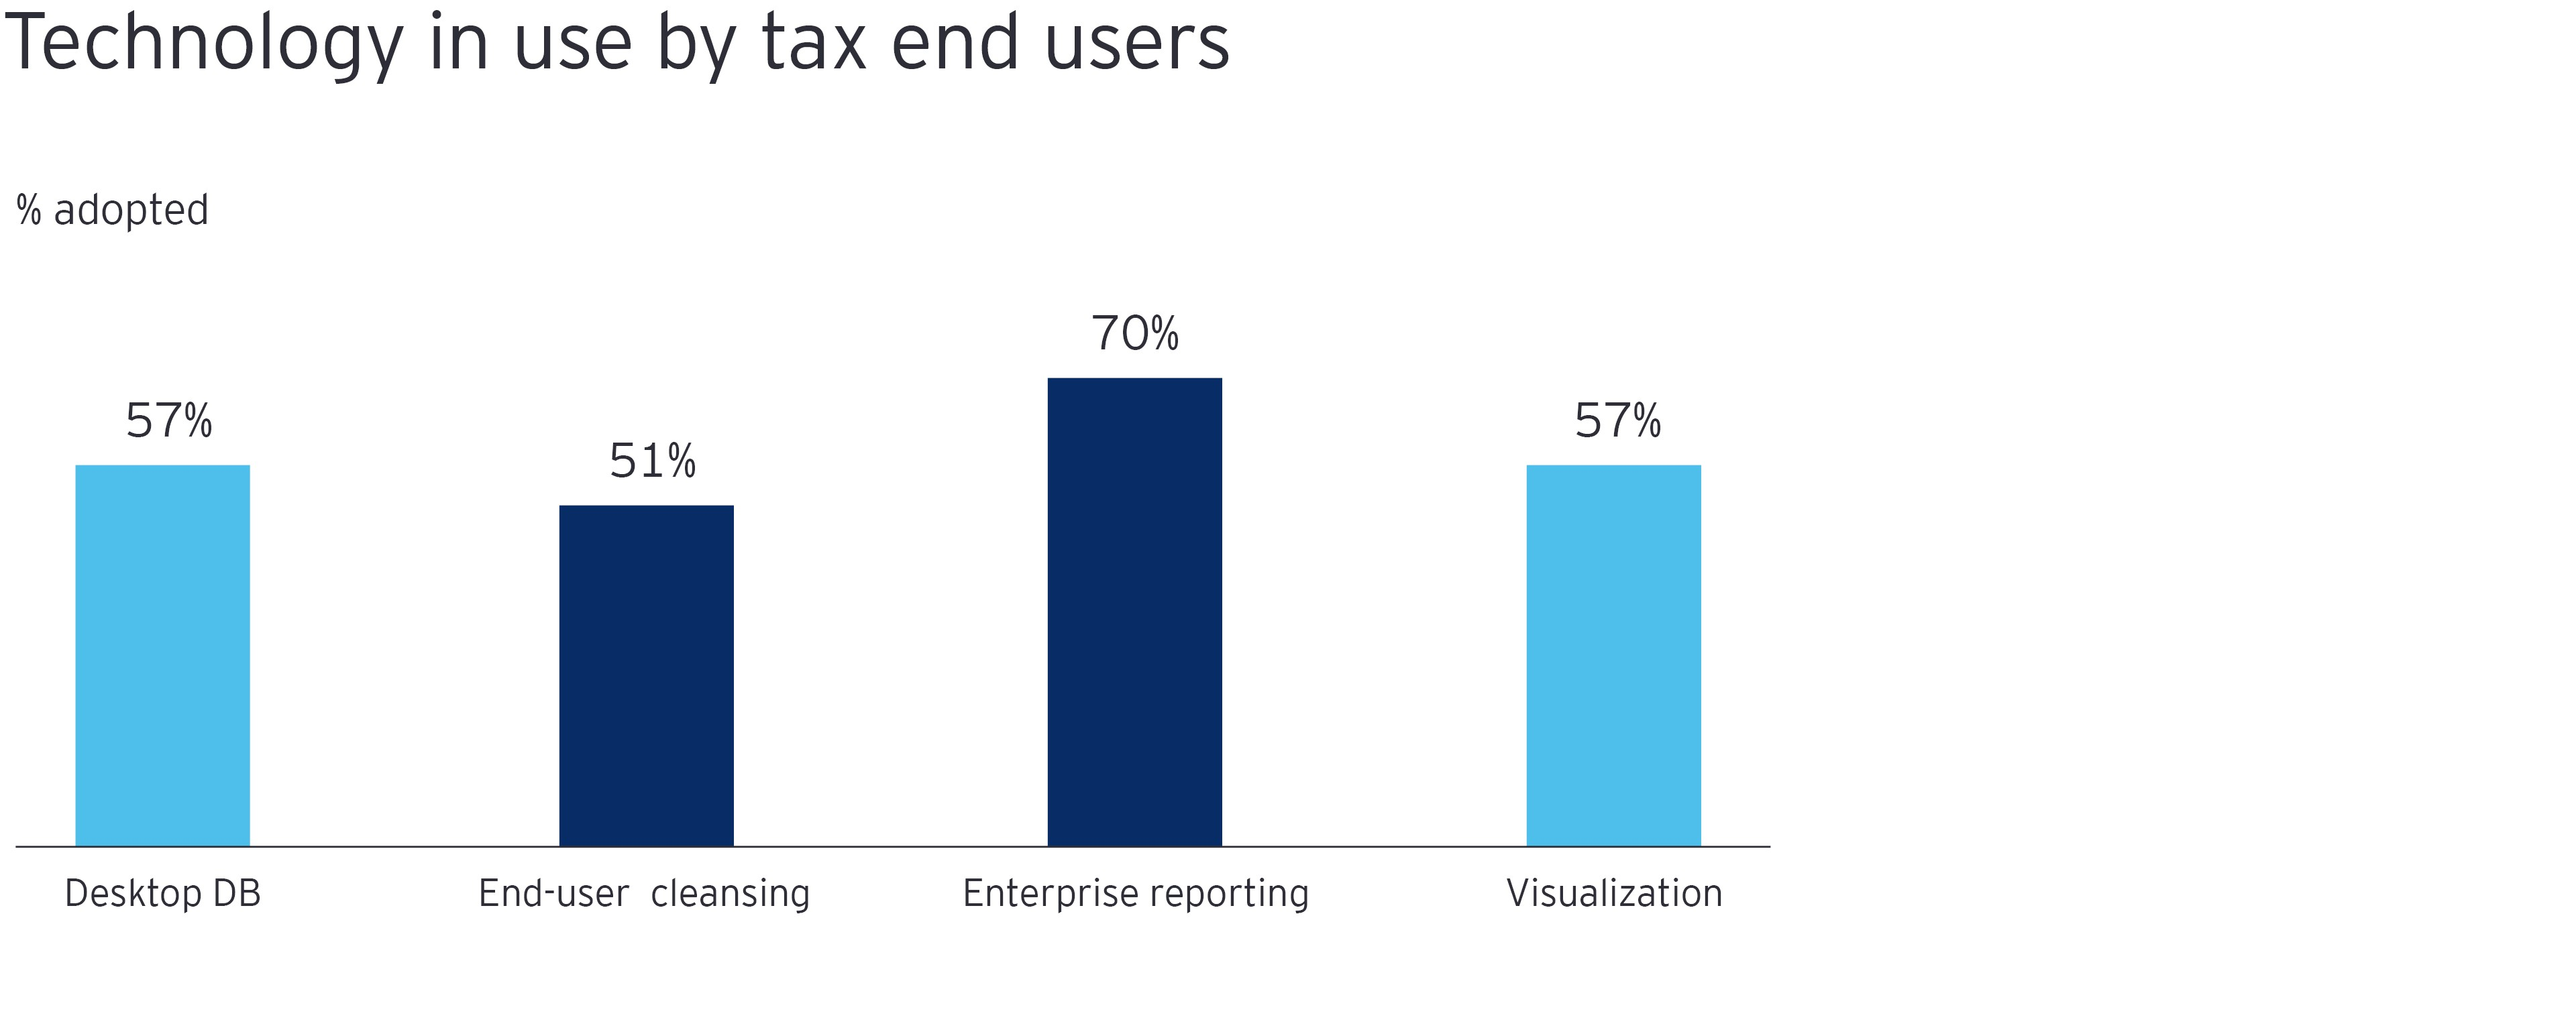 Technology in use by tax end users